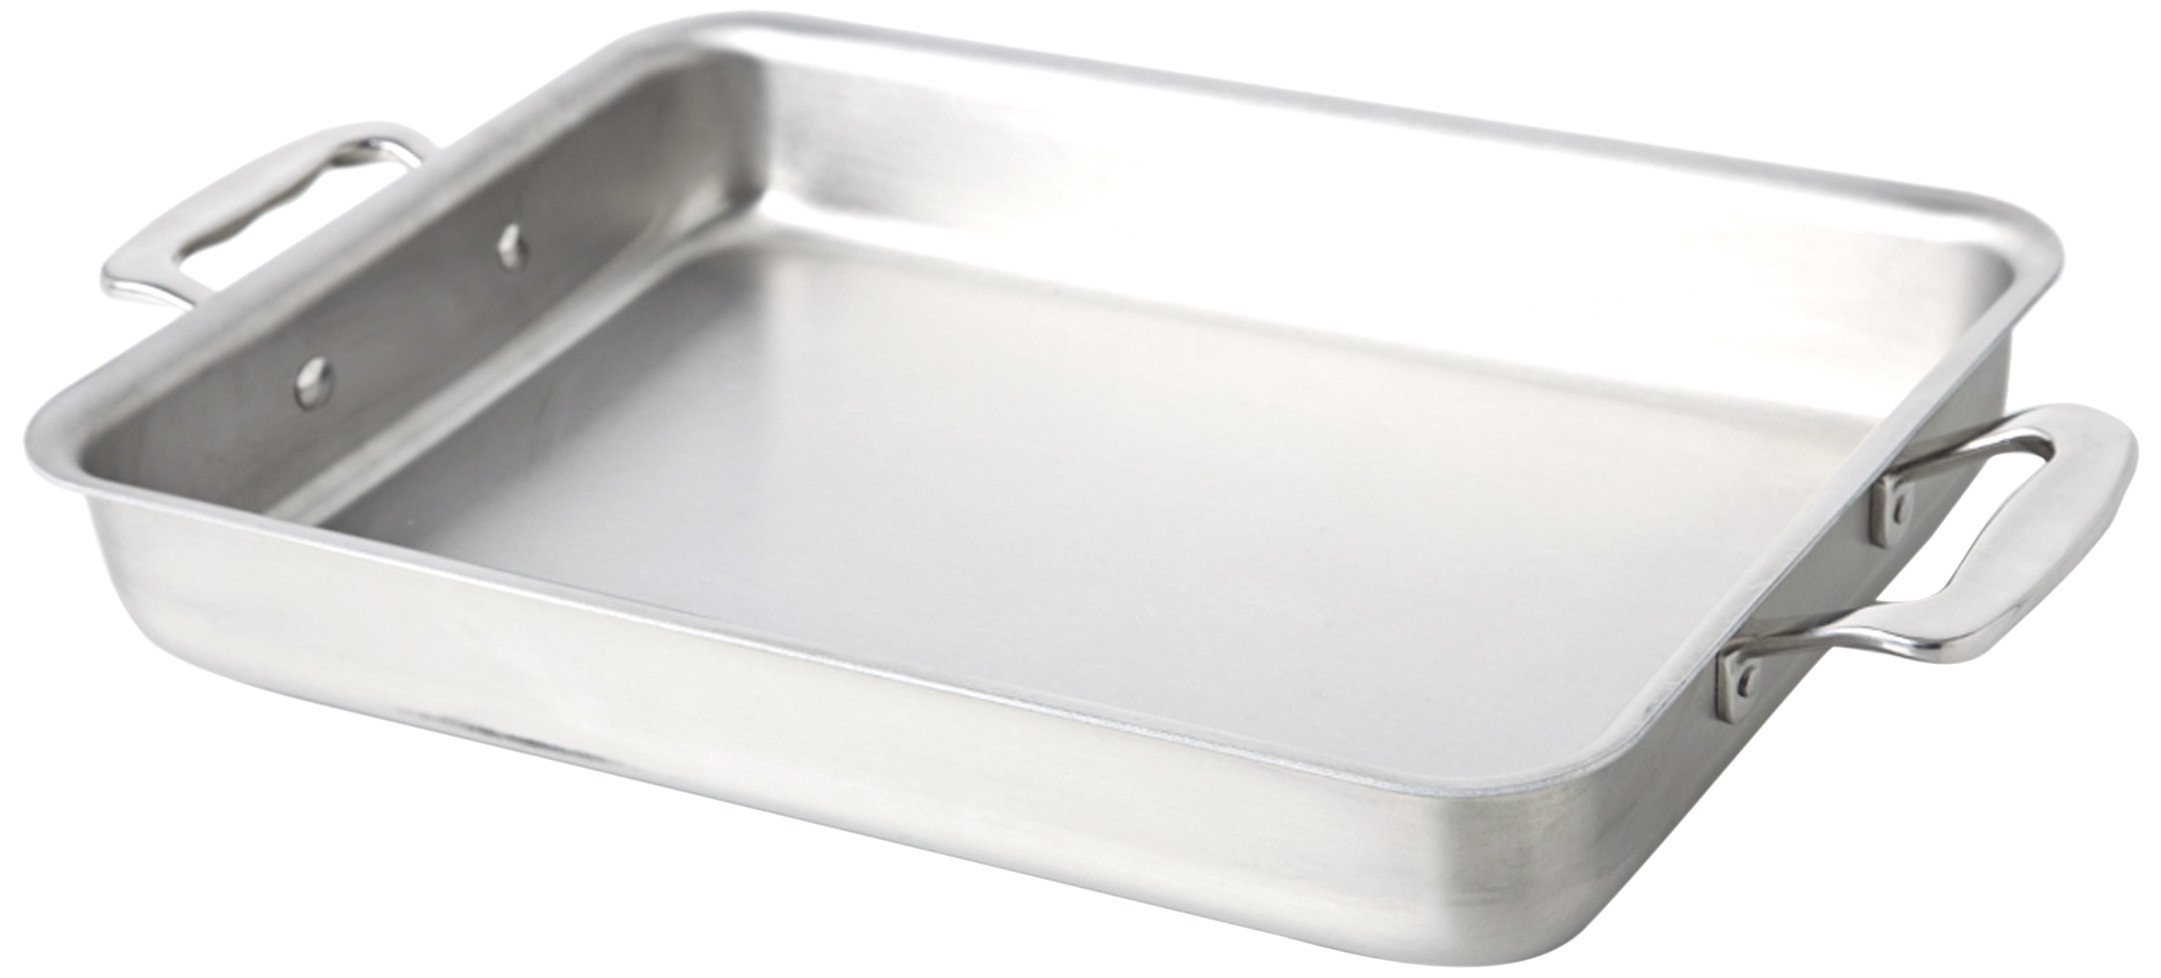 360 Cookware Stainless Steel Bakeware 9 Inch X 13 Inch Baking Pan